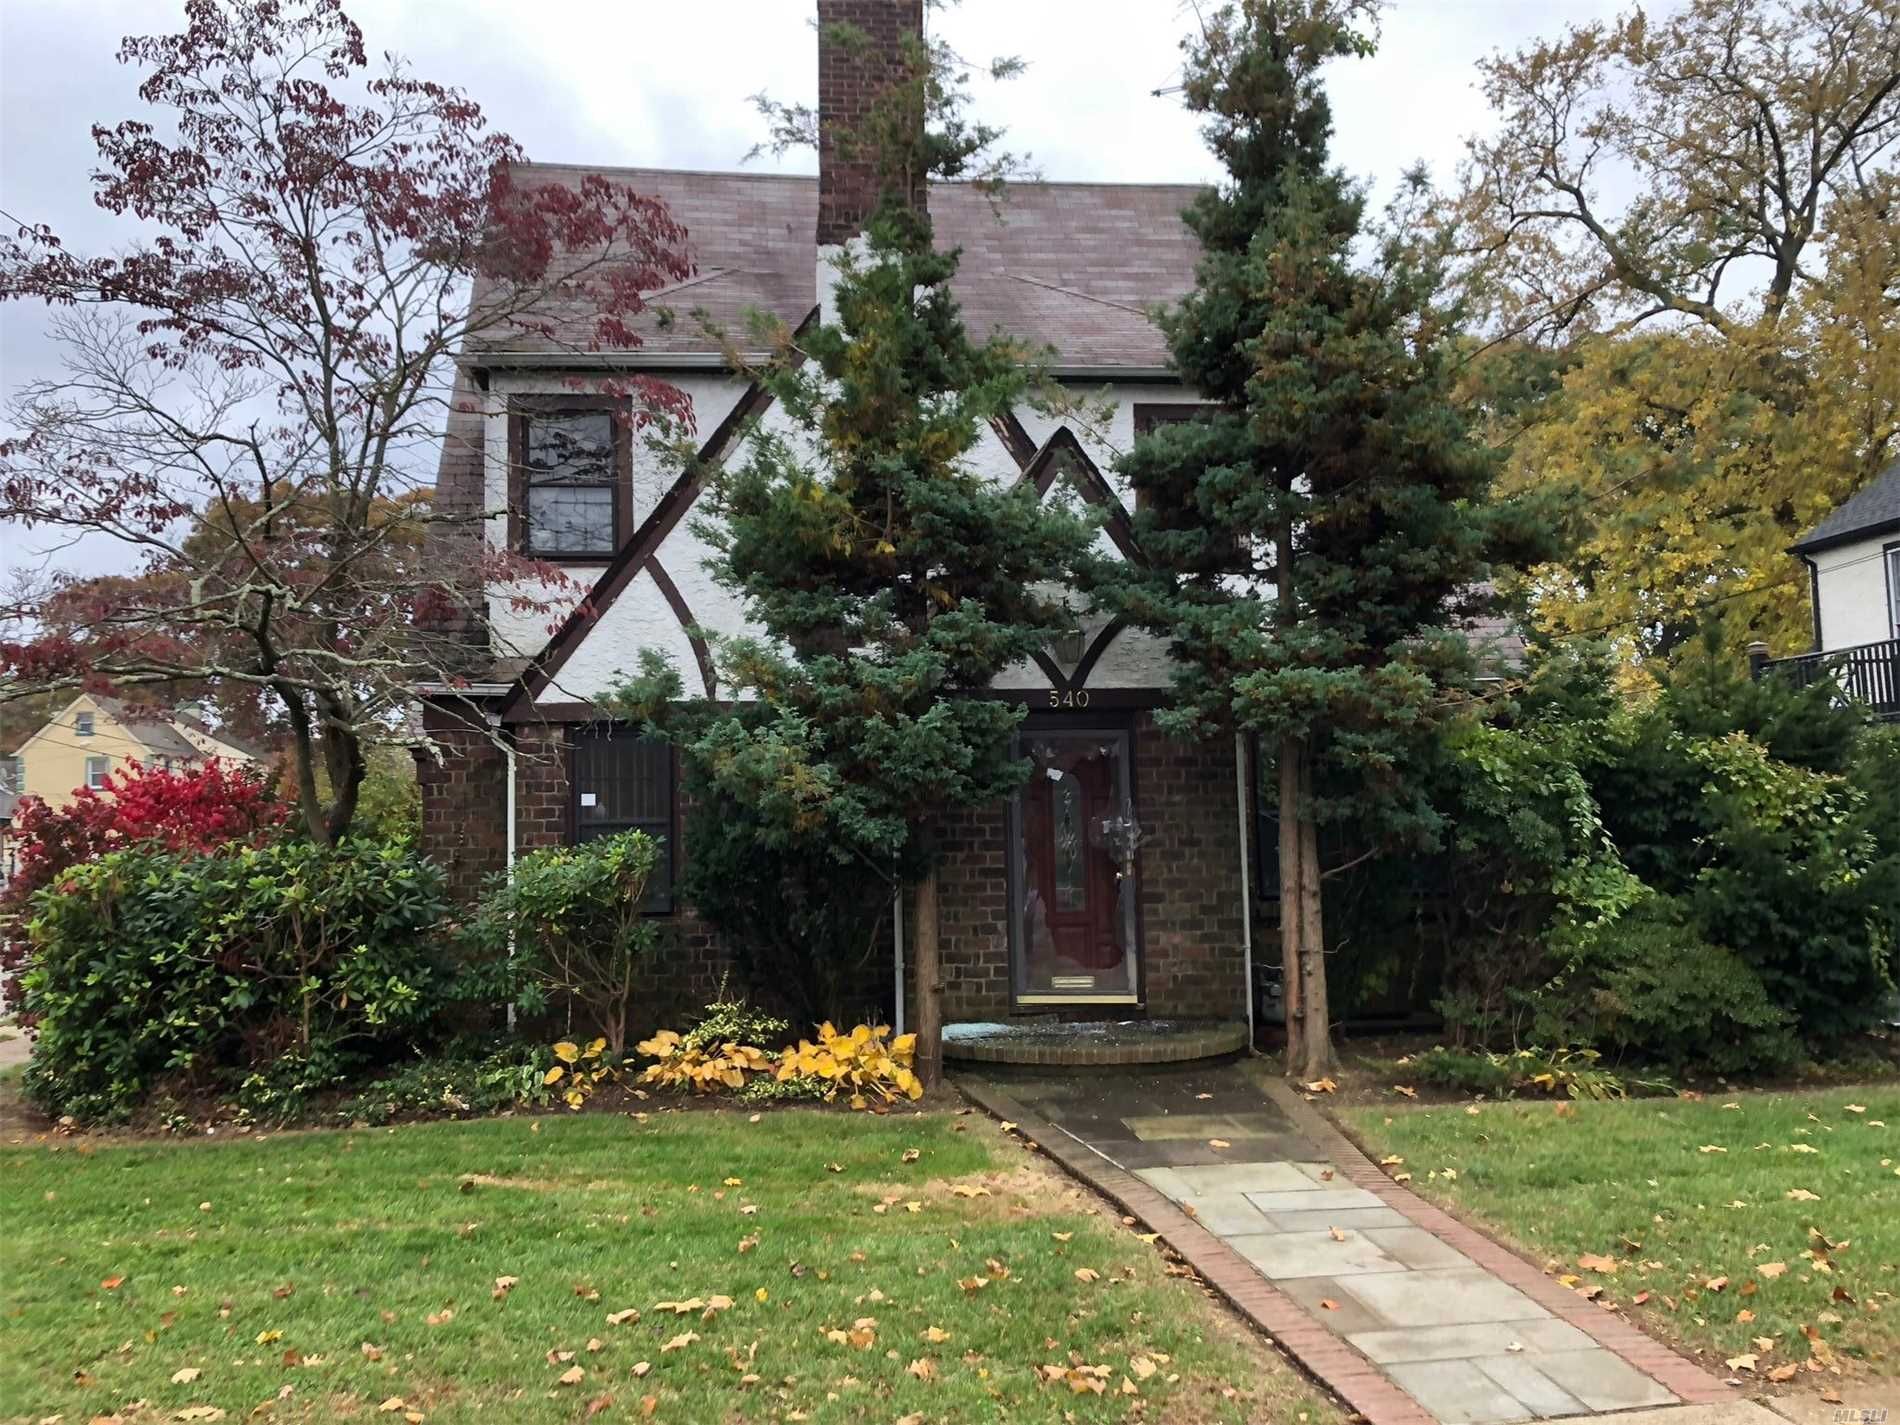 Tudor Style Home. This Home Features 3 Bedrooms, 3 Full Baths, Dining Room, Eat In Kitchen & 2 Car Garage. Centrally Located To All. Don't Miss This Opportunity!